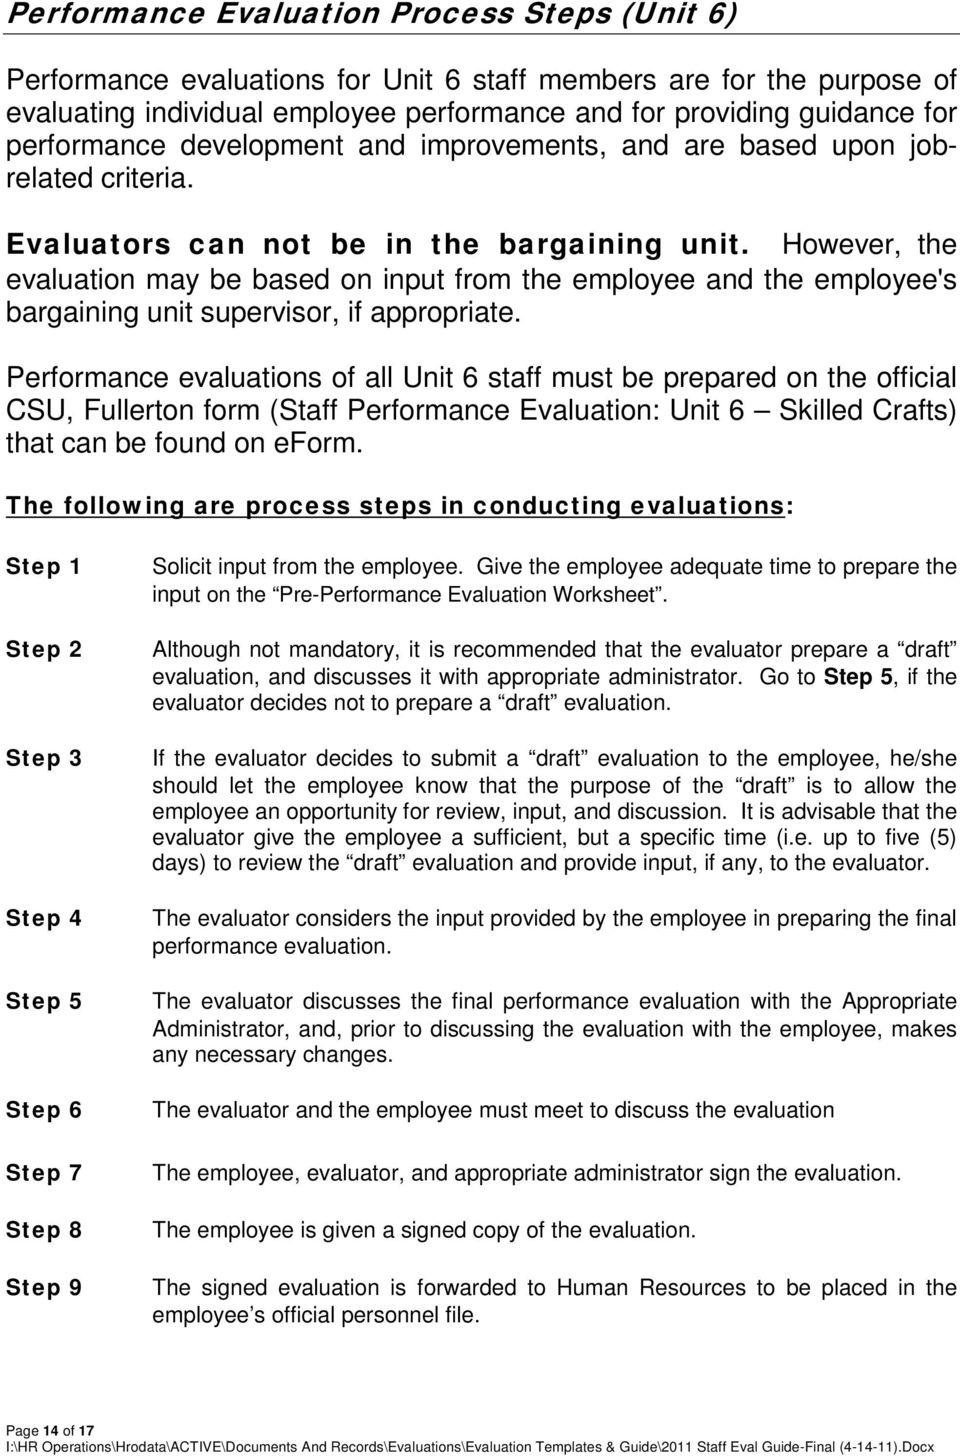 Guide To Effective Staff Performance Evaluations Pdf